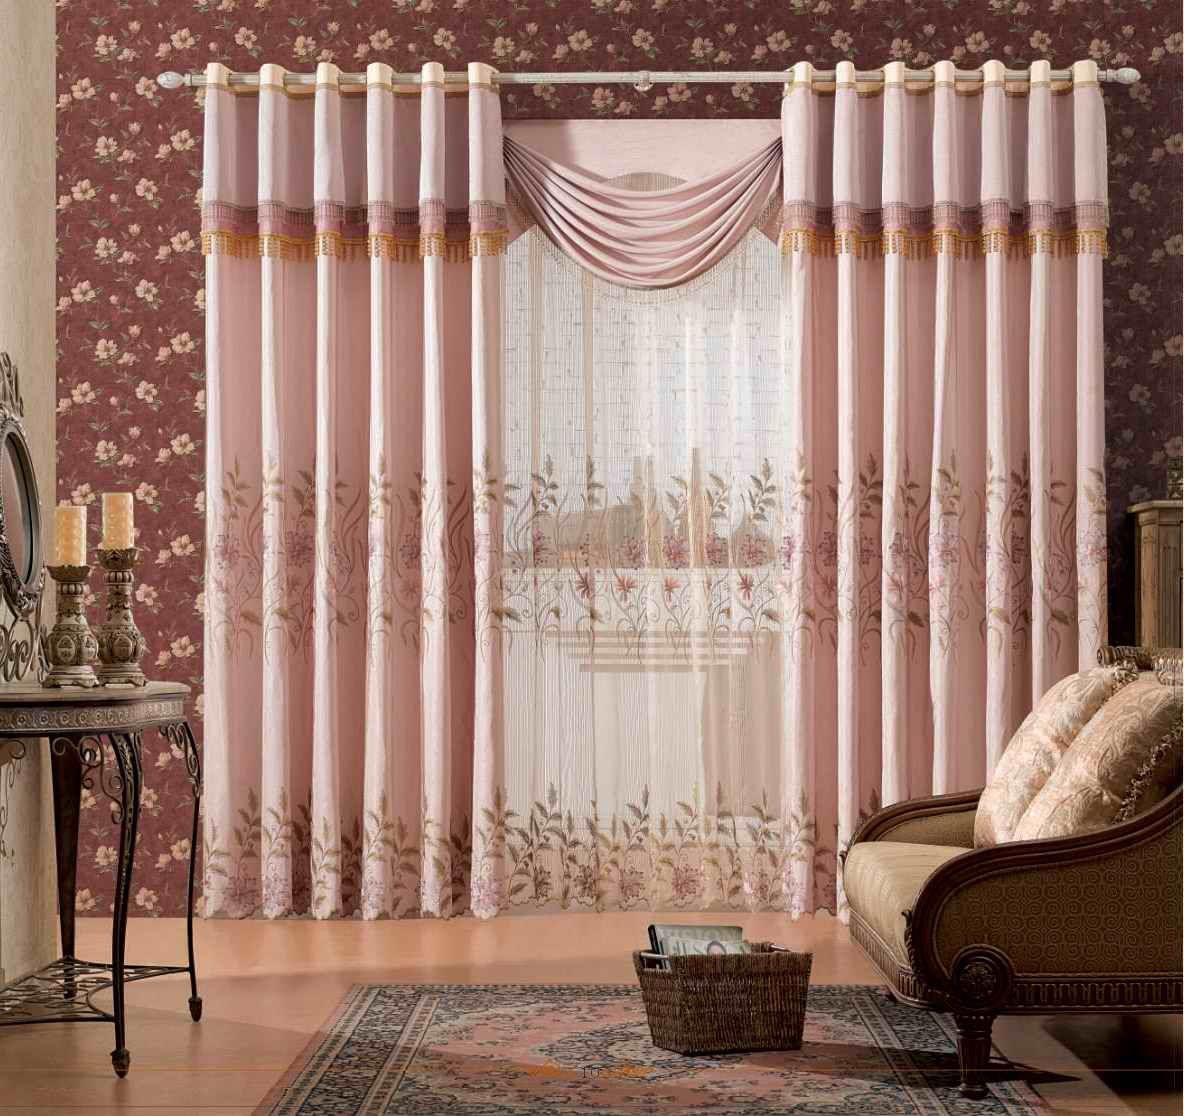 Living Room Curtains Designs Extraordinary Top 22 Curtain Designs For Living Room  European Style Beautiful Decorating Inspiration